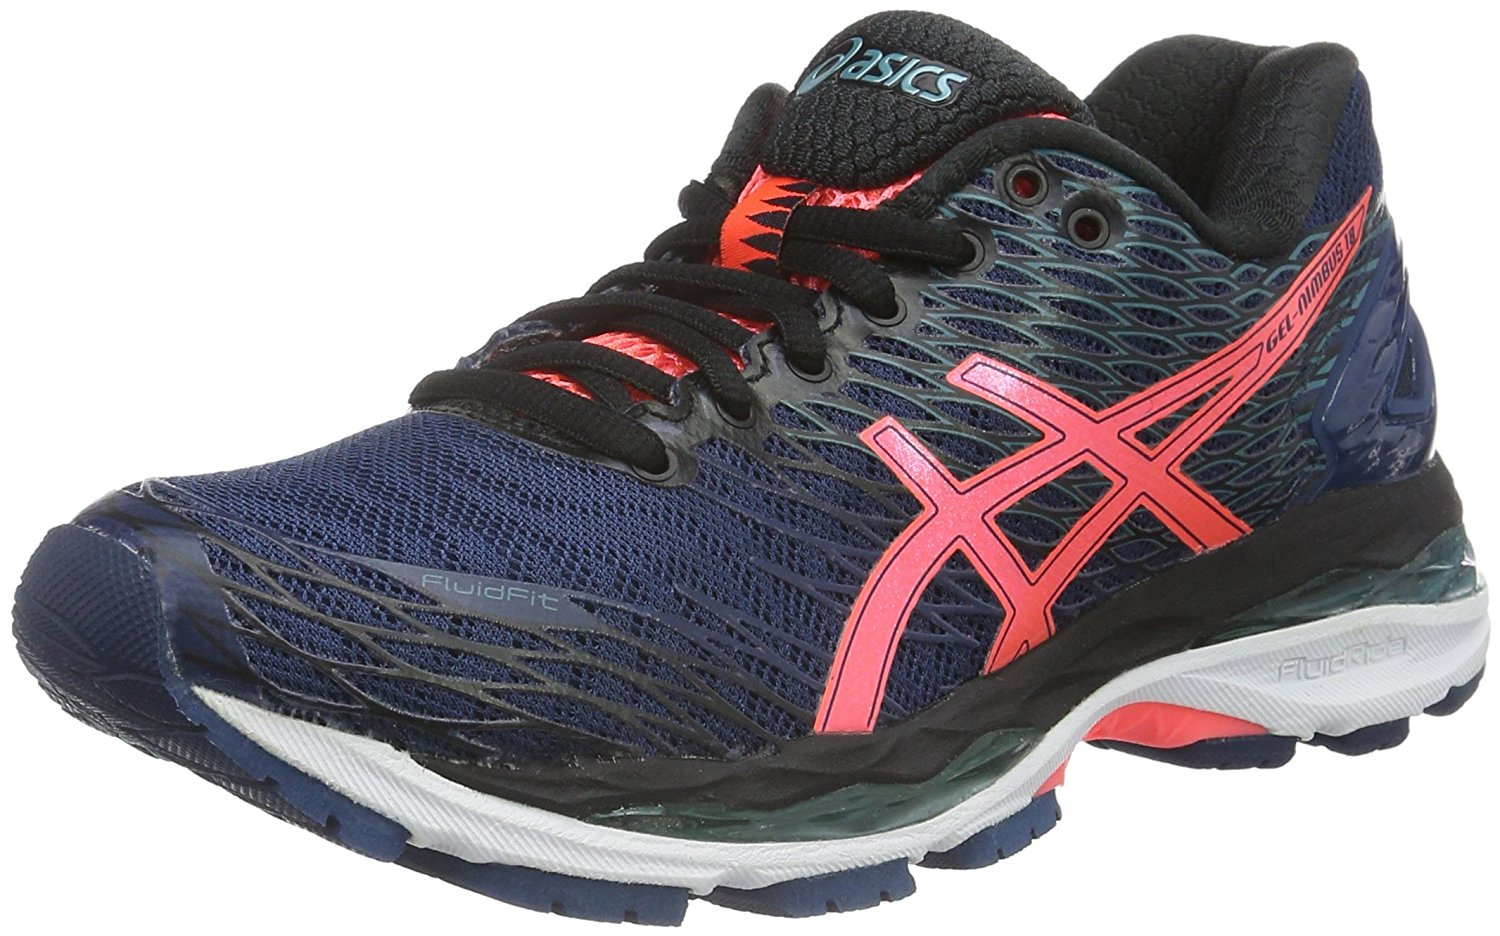 66936297b987 Get Quotations · Asics Gel-Nimbus 18 Ladies Running Shoes